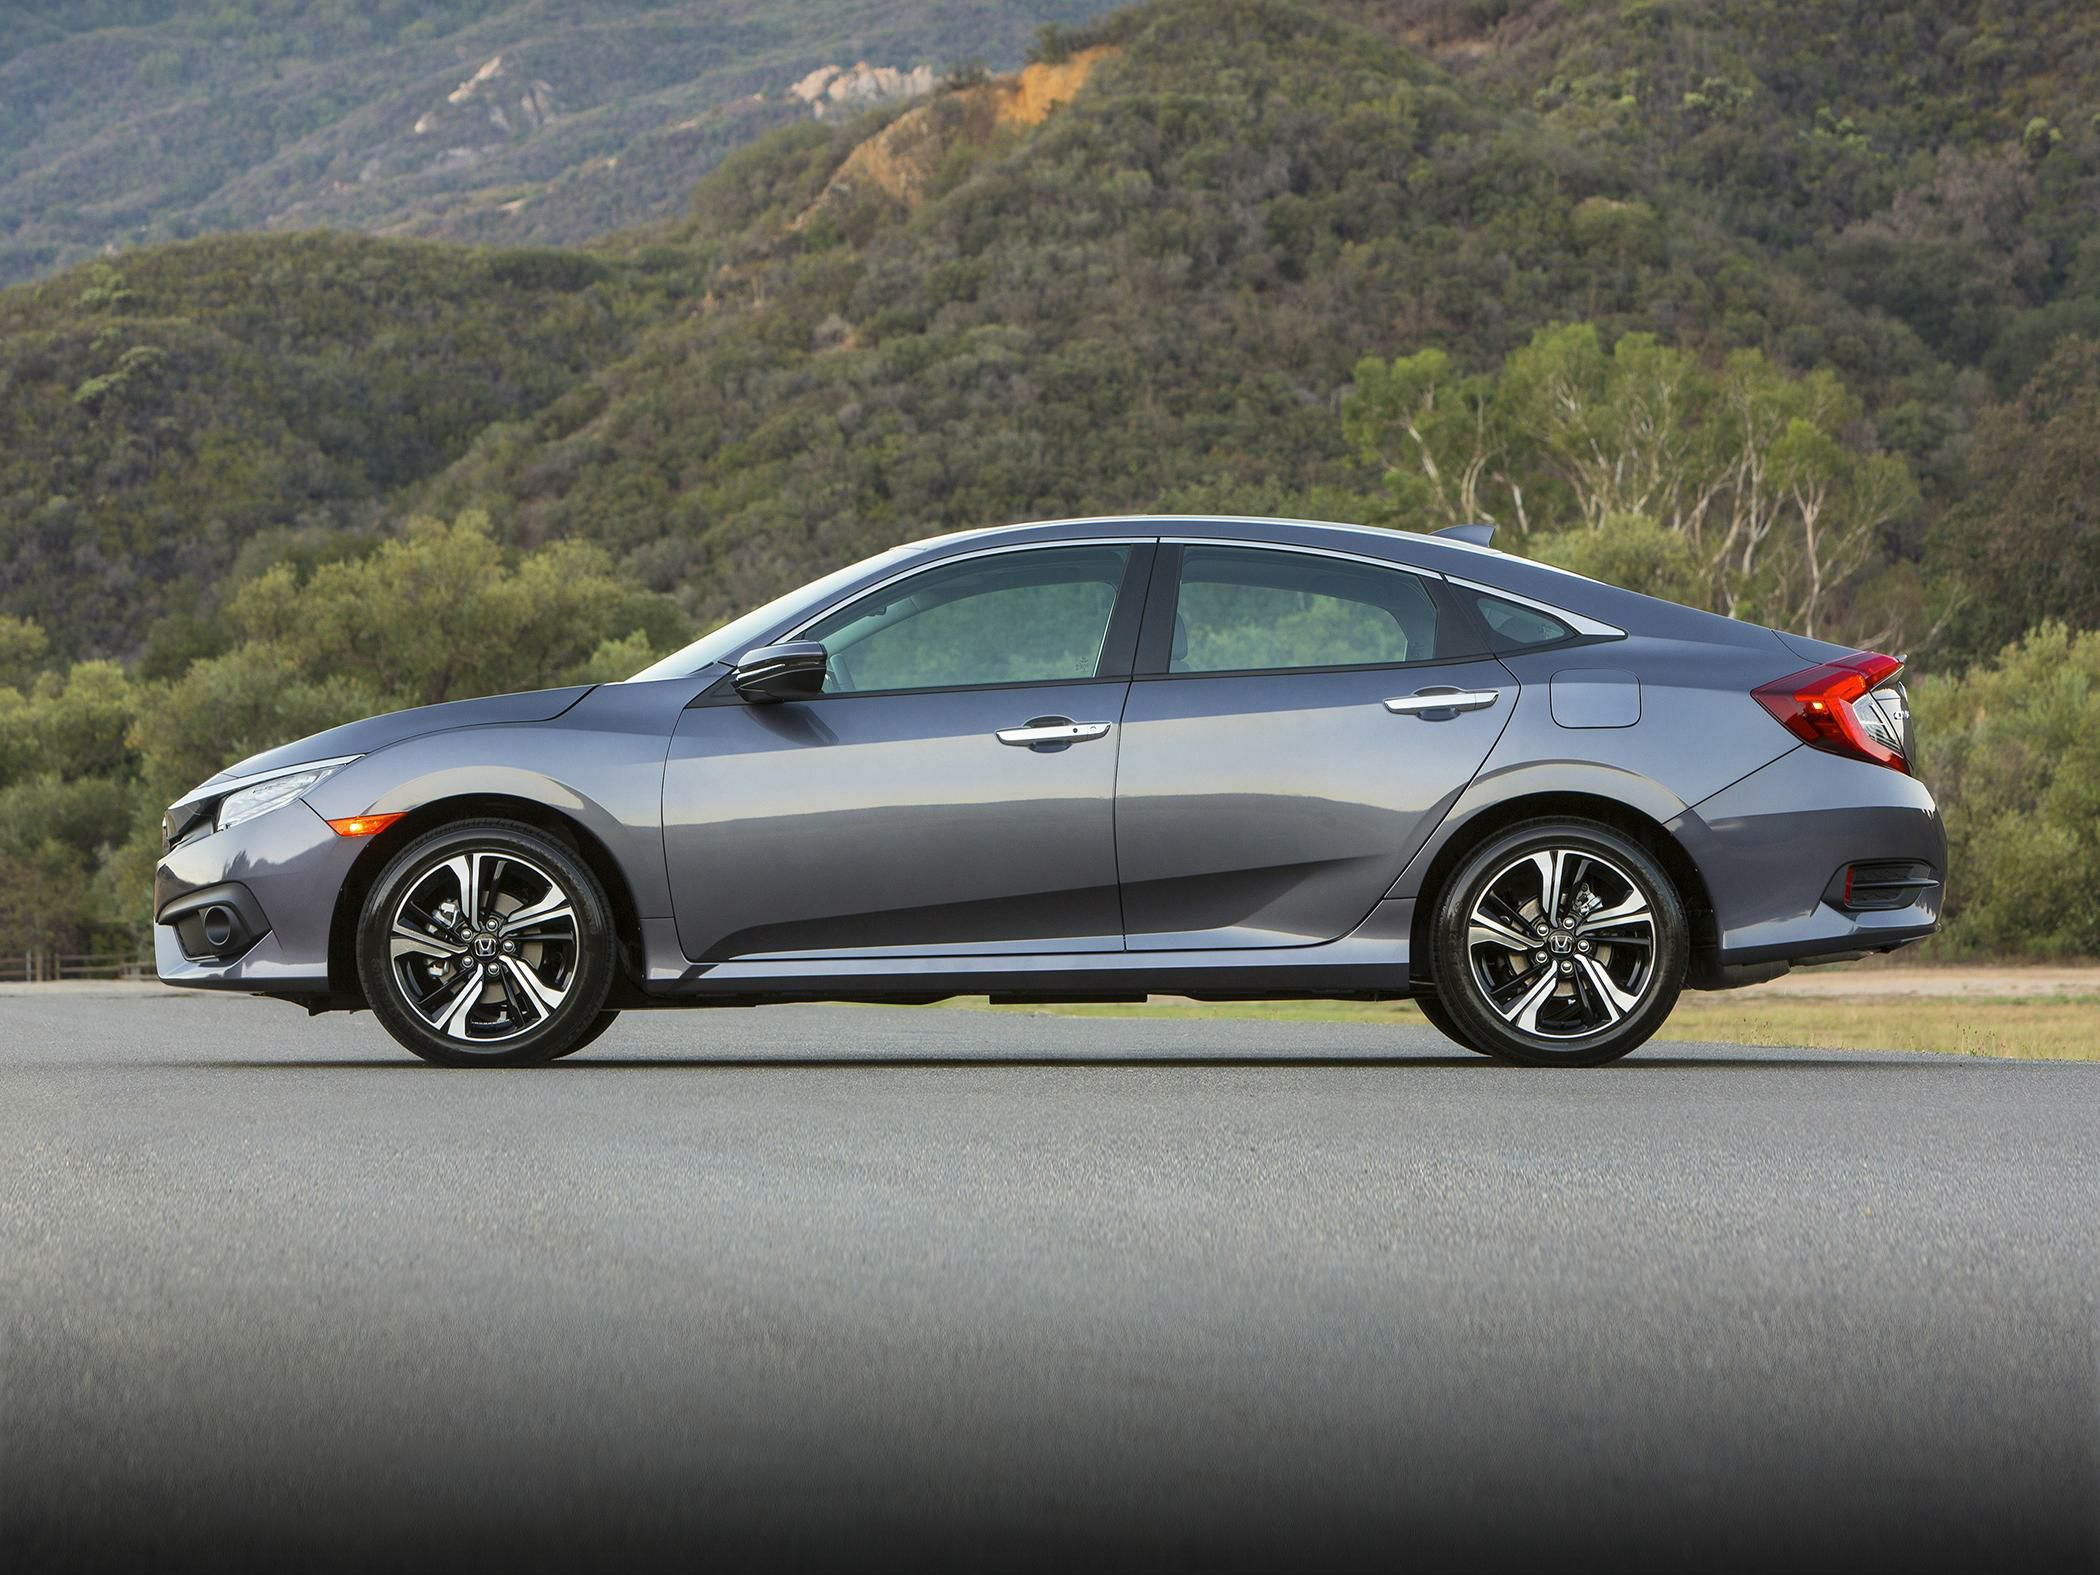 dealer begin base is bomet accord a will grille deals front nov ex appear the lease hybrid november ocharleys to honda later coupon l in lower touring showrooms